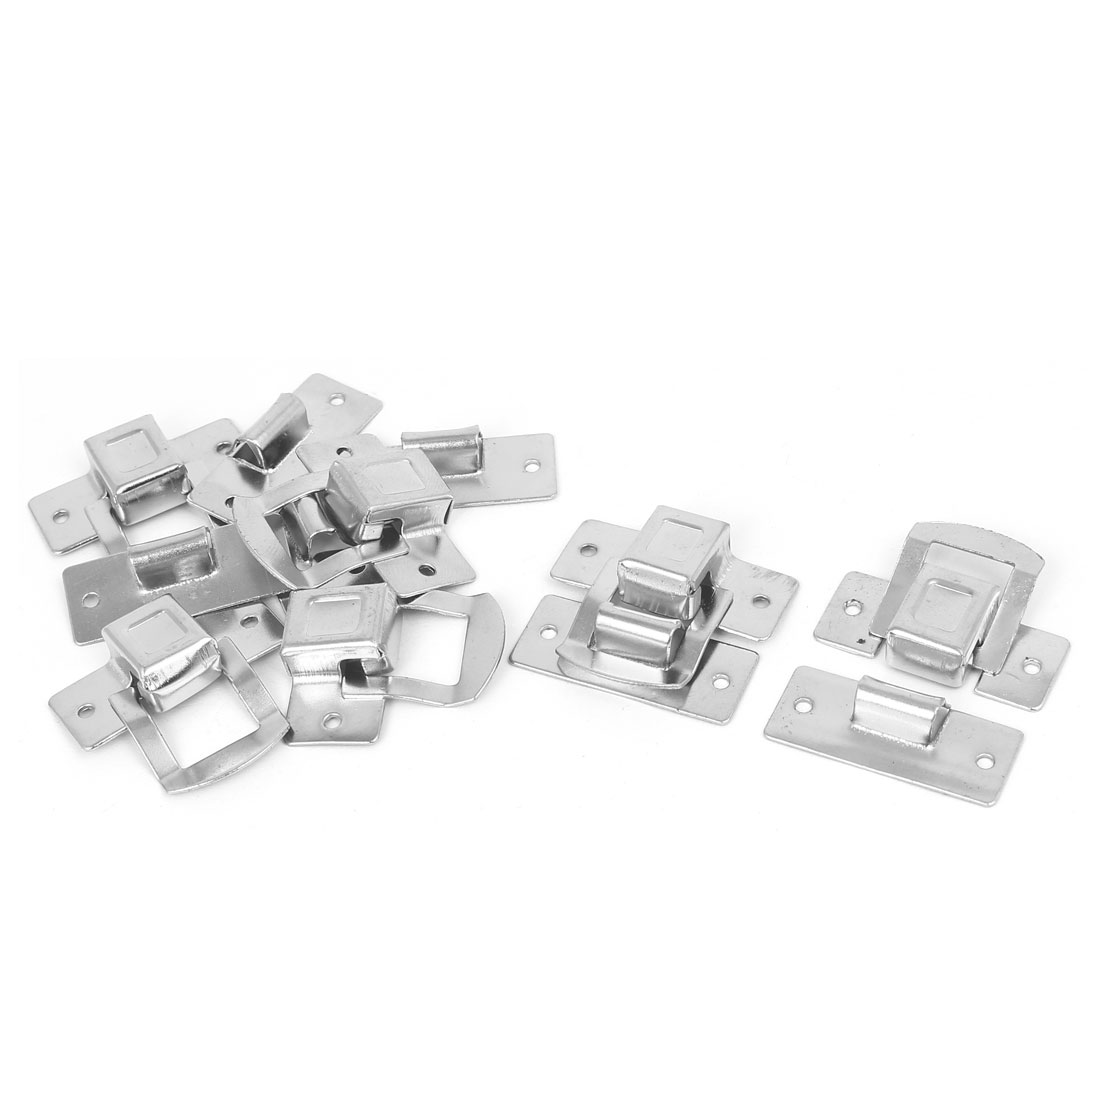 Toolbox Wooden Case Box Iron Toggle Latch Hasp Silver Tone 34mmx30mmx8mm 6pcs